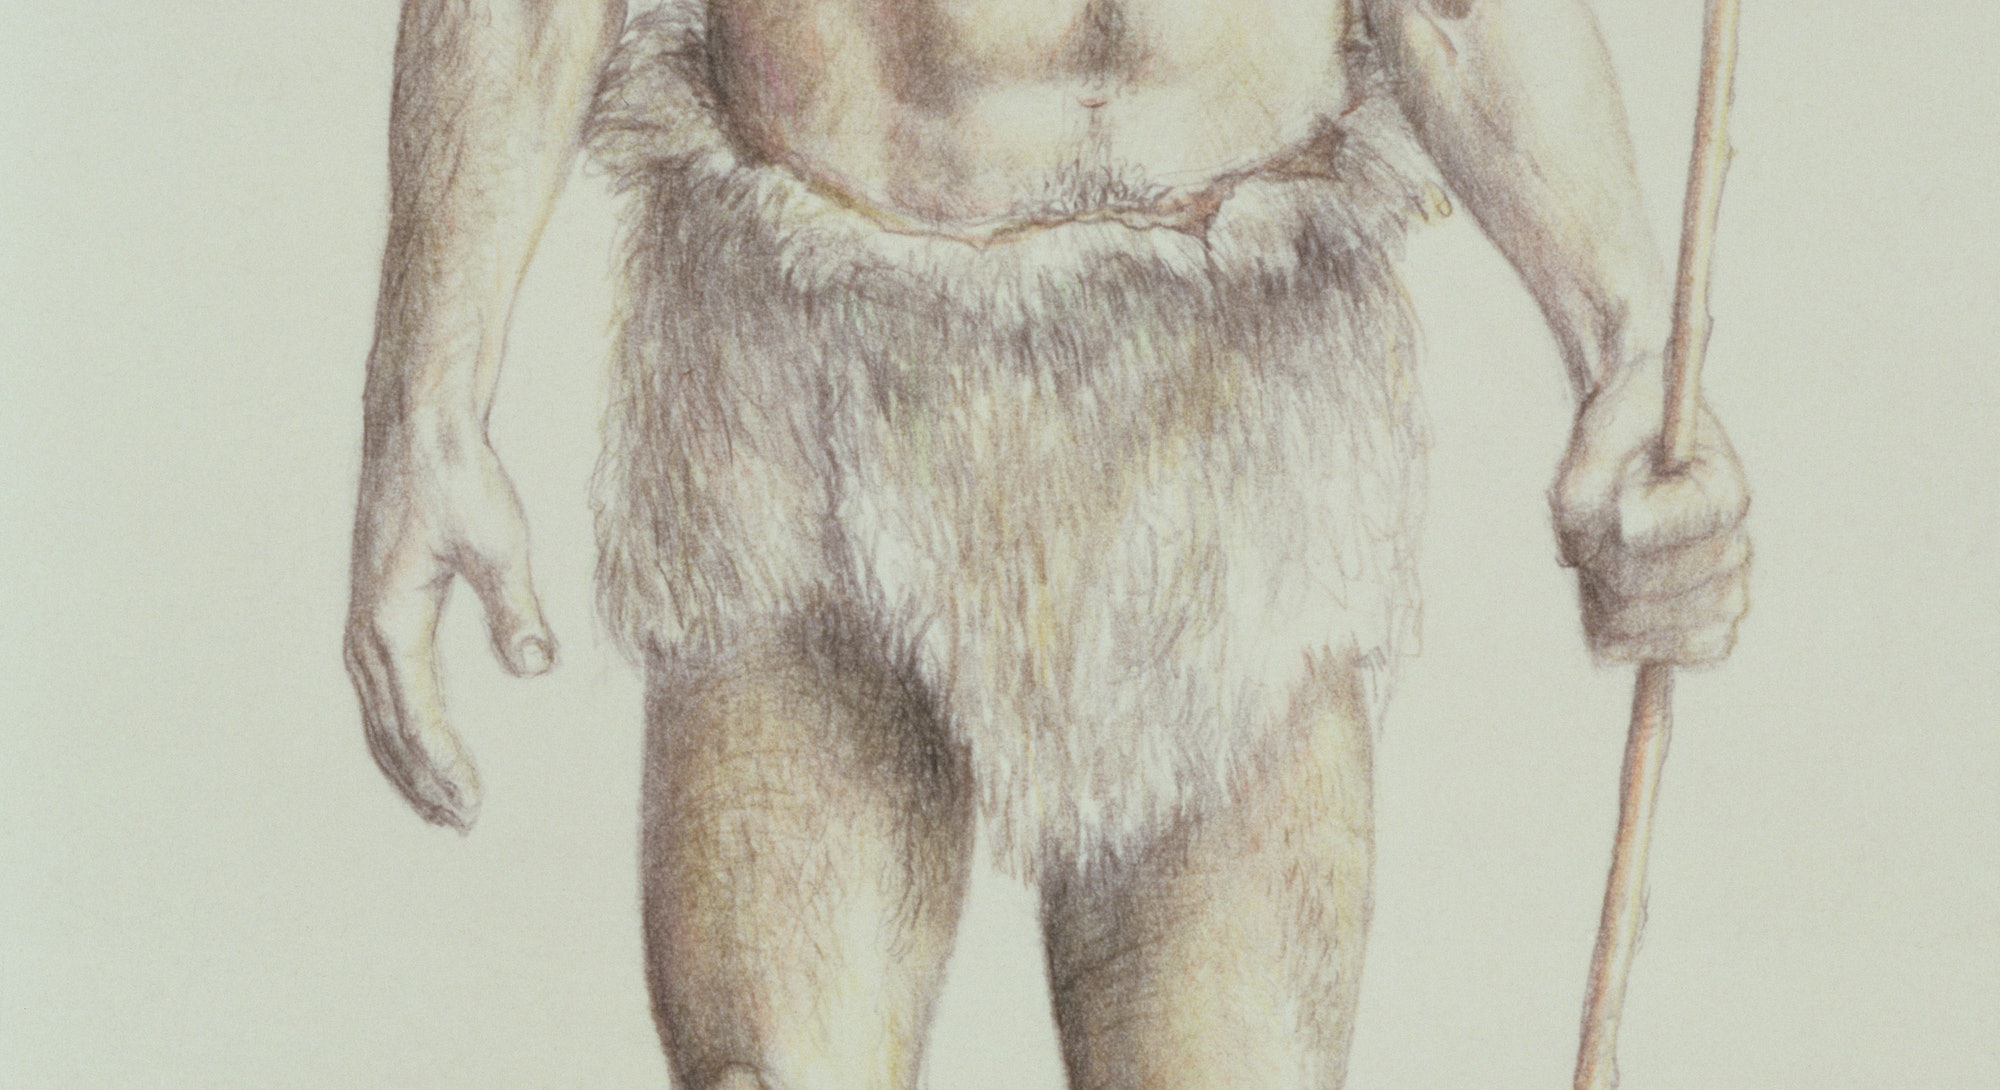 Neanderthal Man (pencil on paper) (Photo by Art Images via Getty Images)